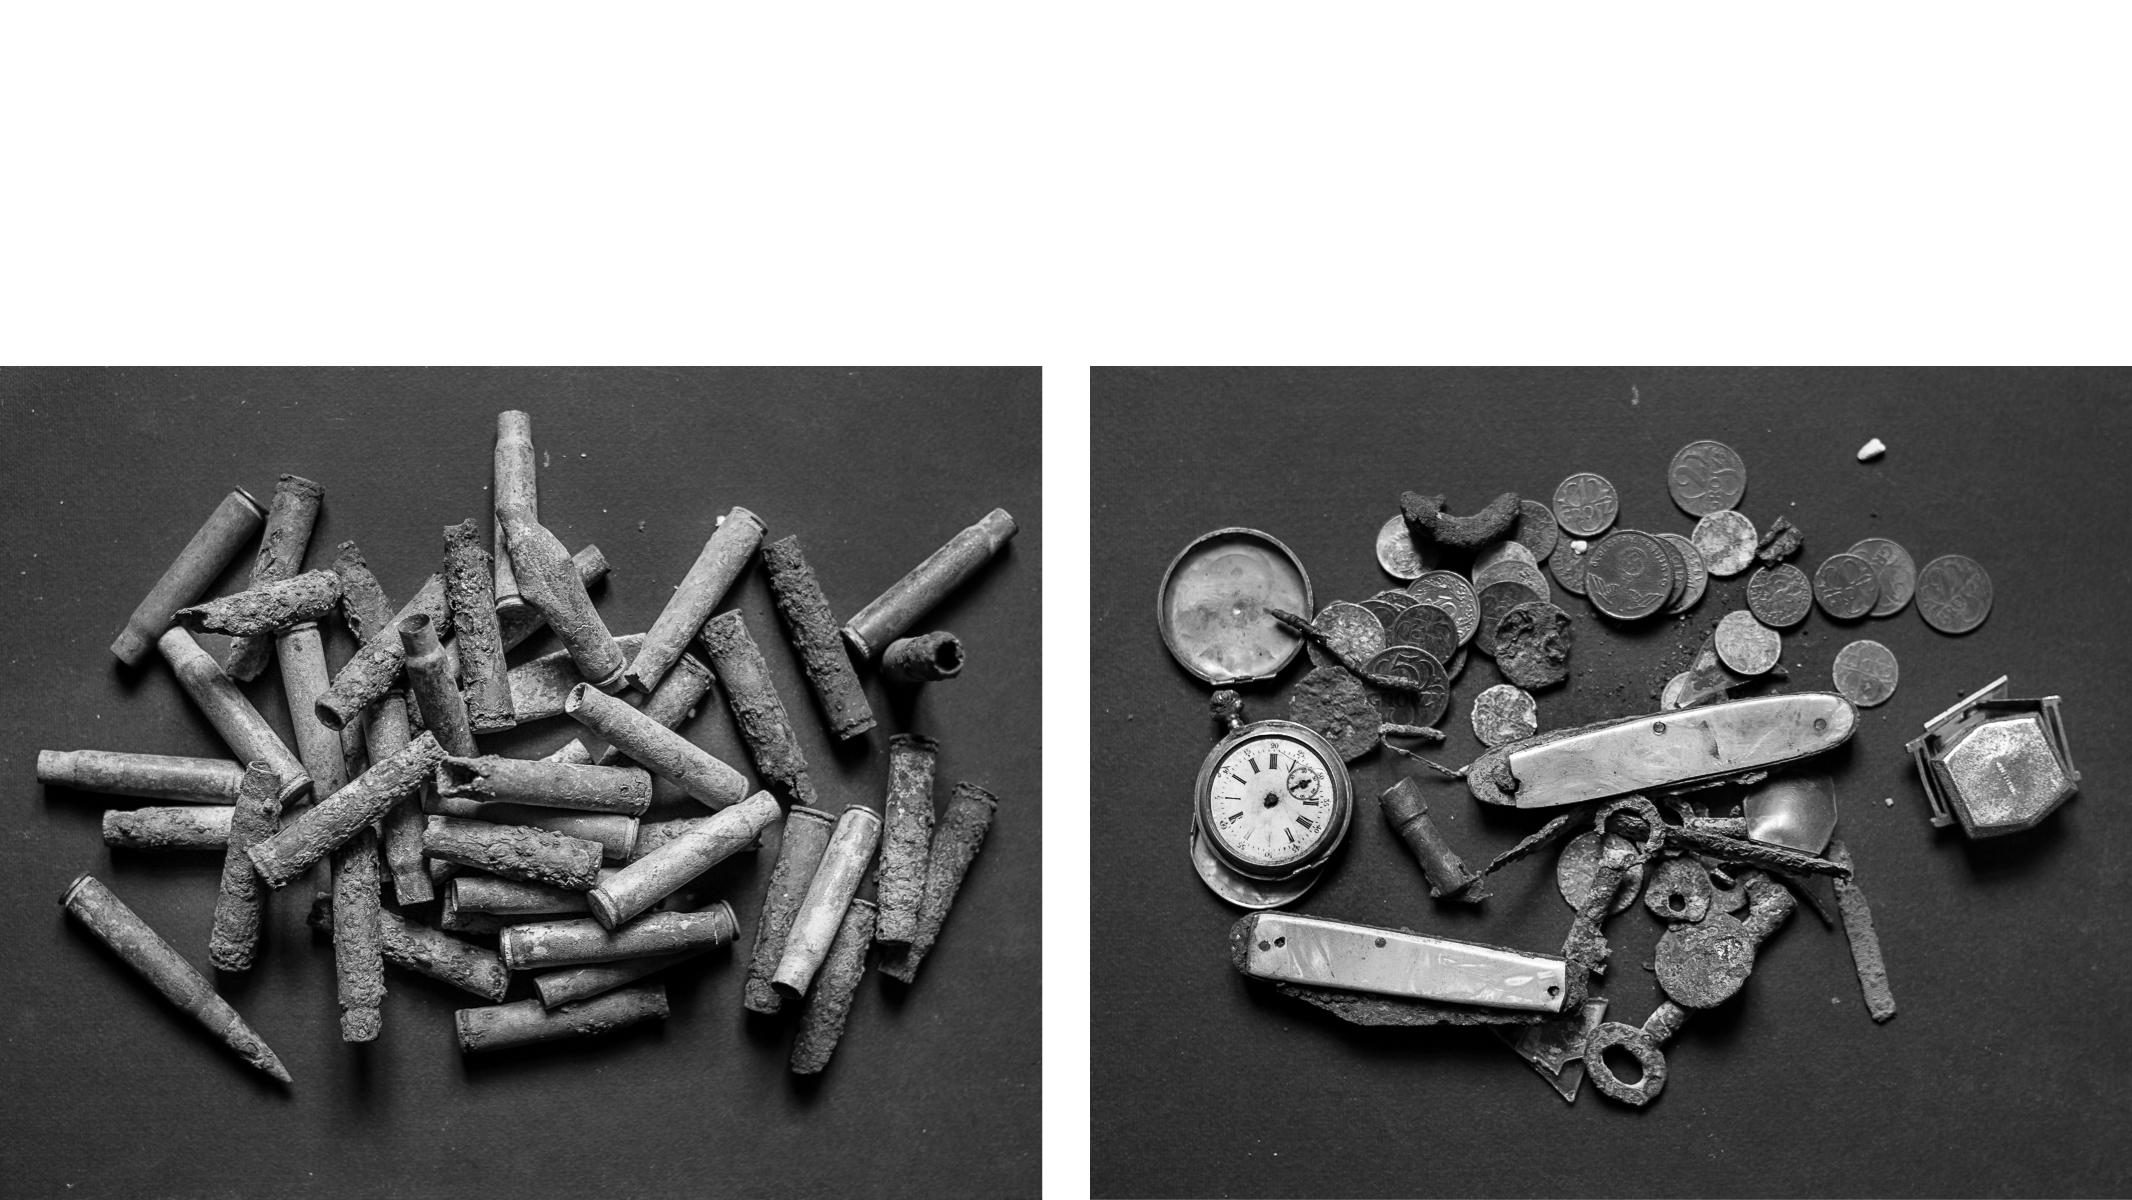 In Search of Amnesia ~ Bullets & Watches diptych